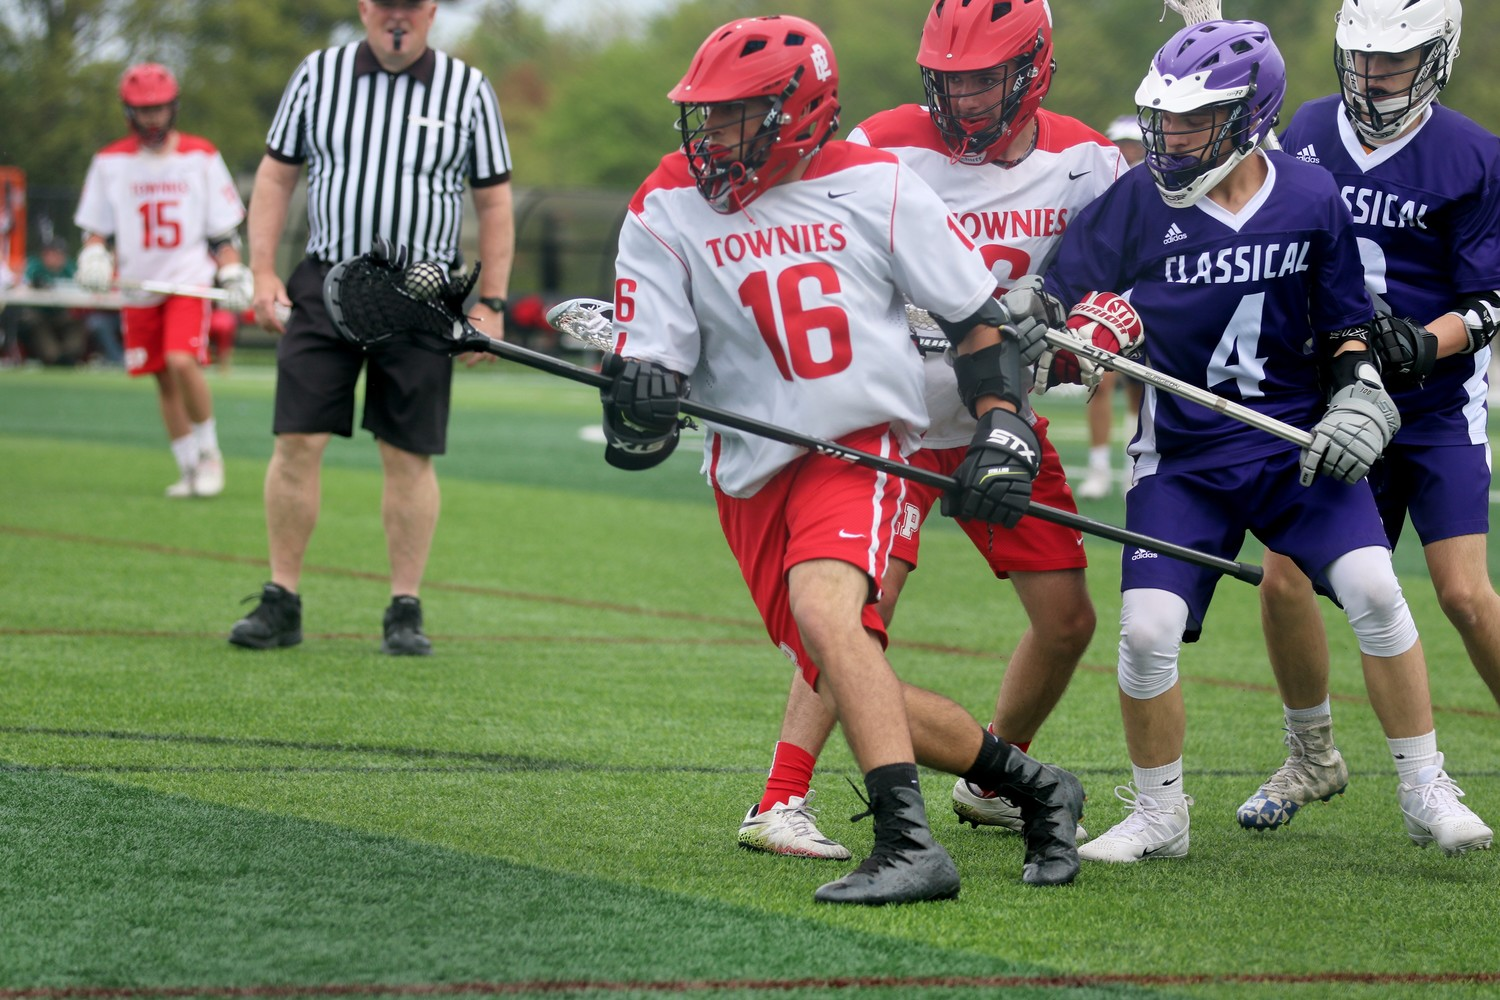 Richard Maciel leading the Townies down field in lacrosse action.